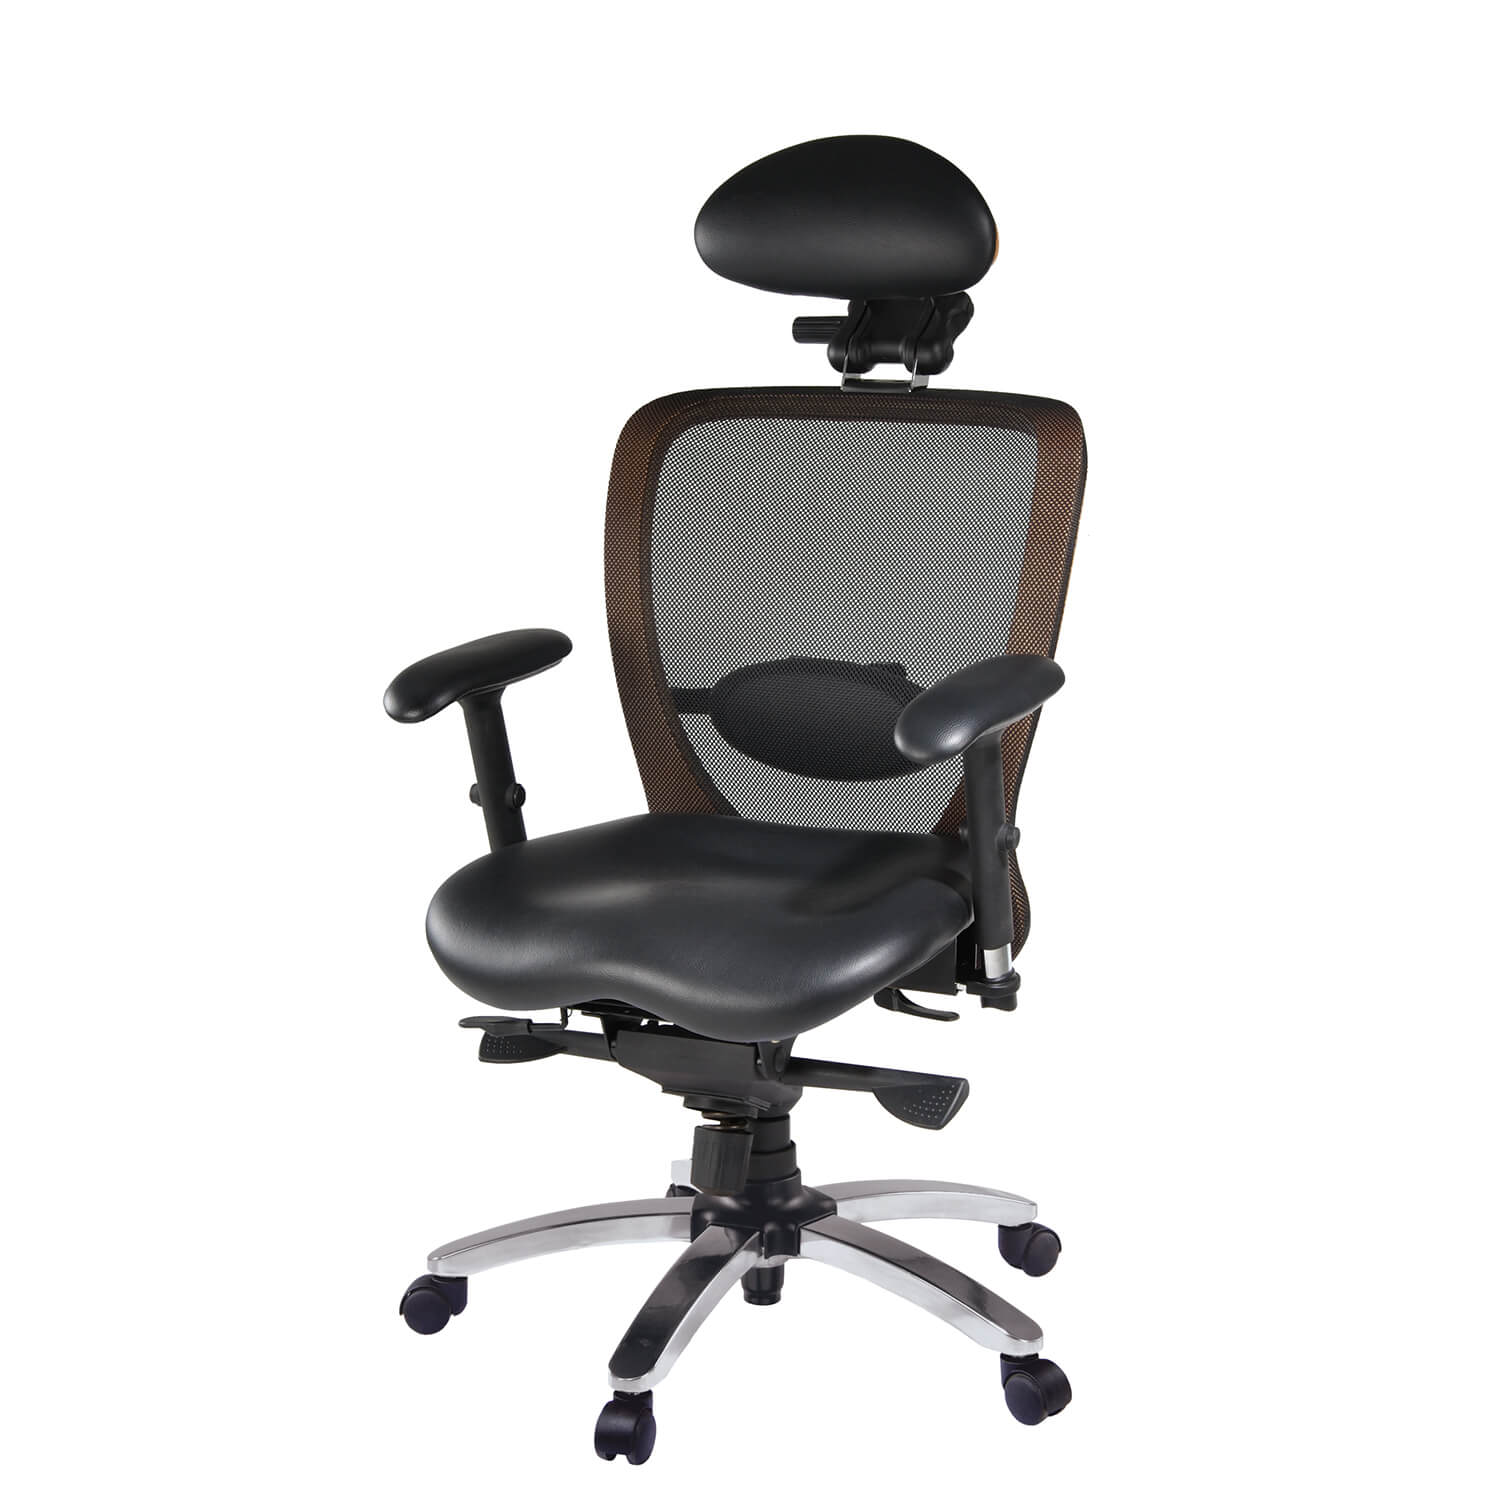 fauteuil tournant de bureau ergotec synchro pro cuir careshop. Black Bedroom Furniture Sets. Home Design Ideas